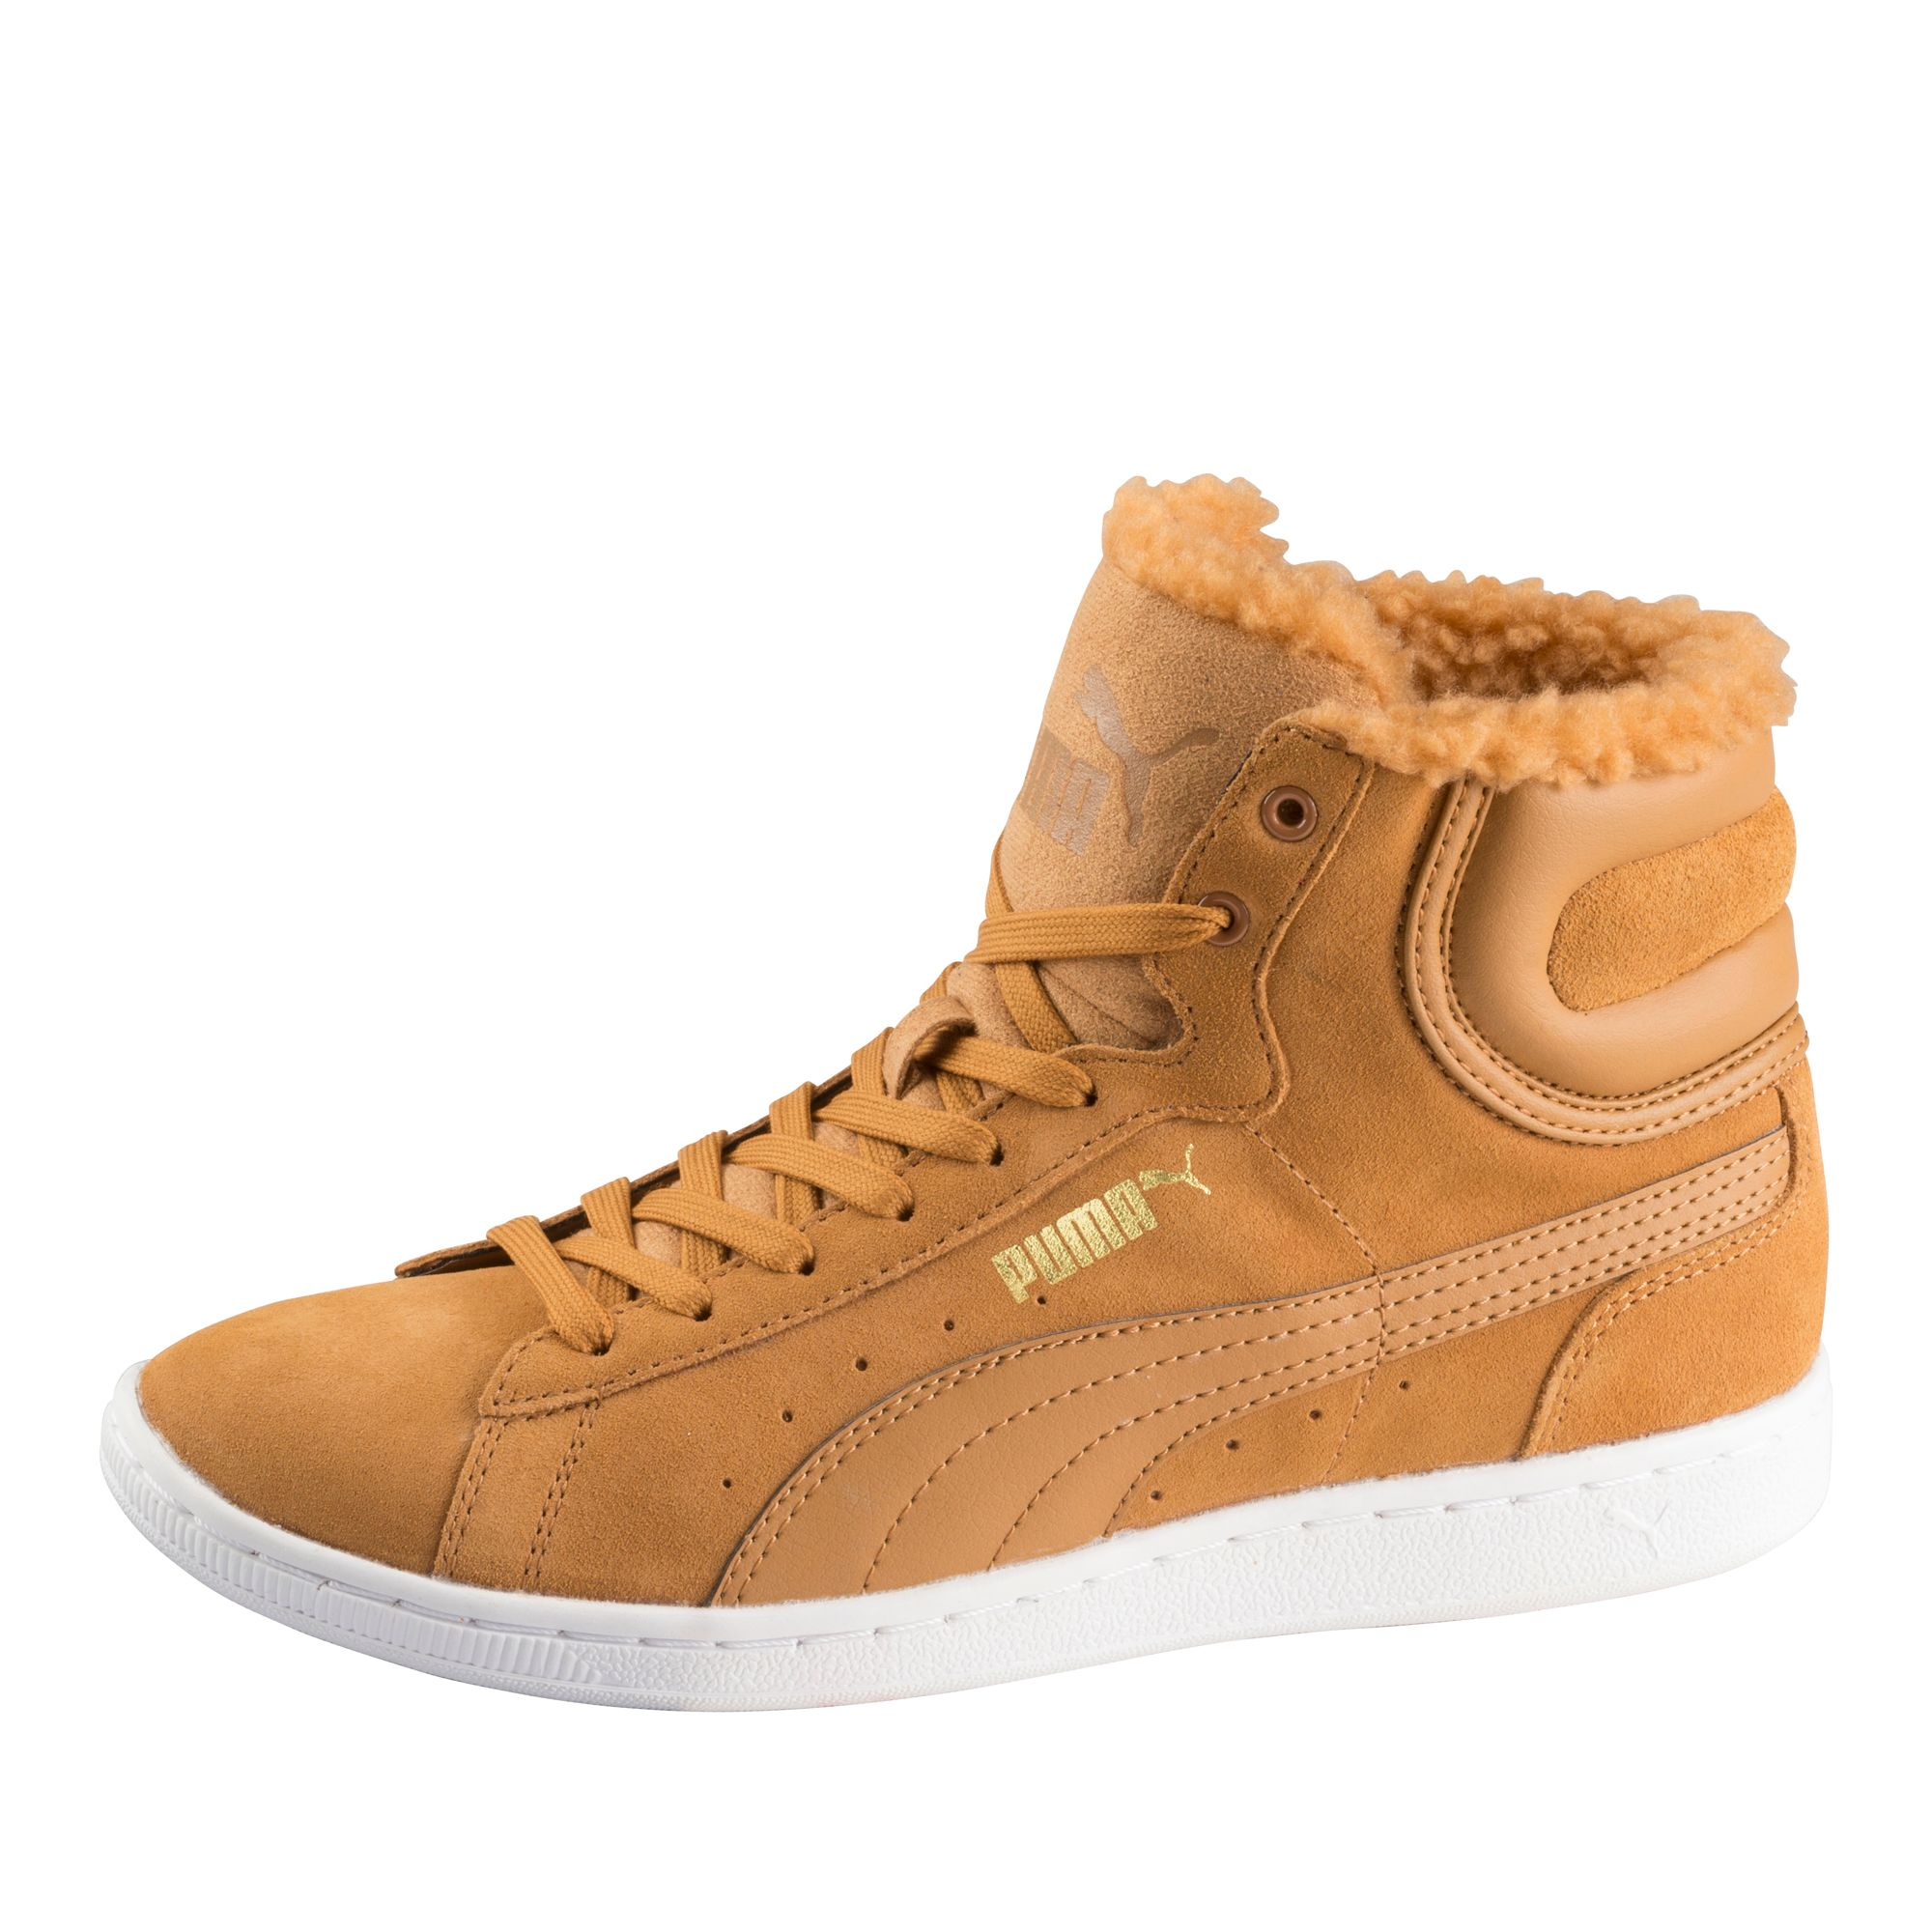 PUMA Chaussure montante Vikky Winter Chaussures Chaussures d